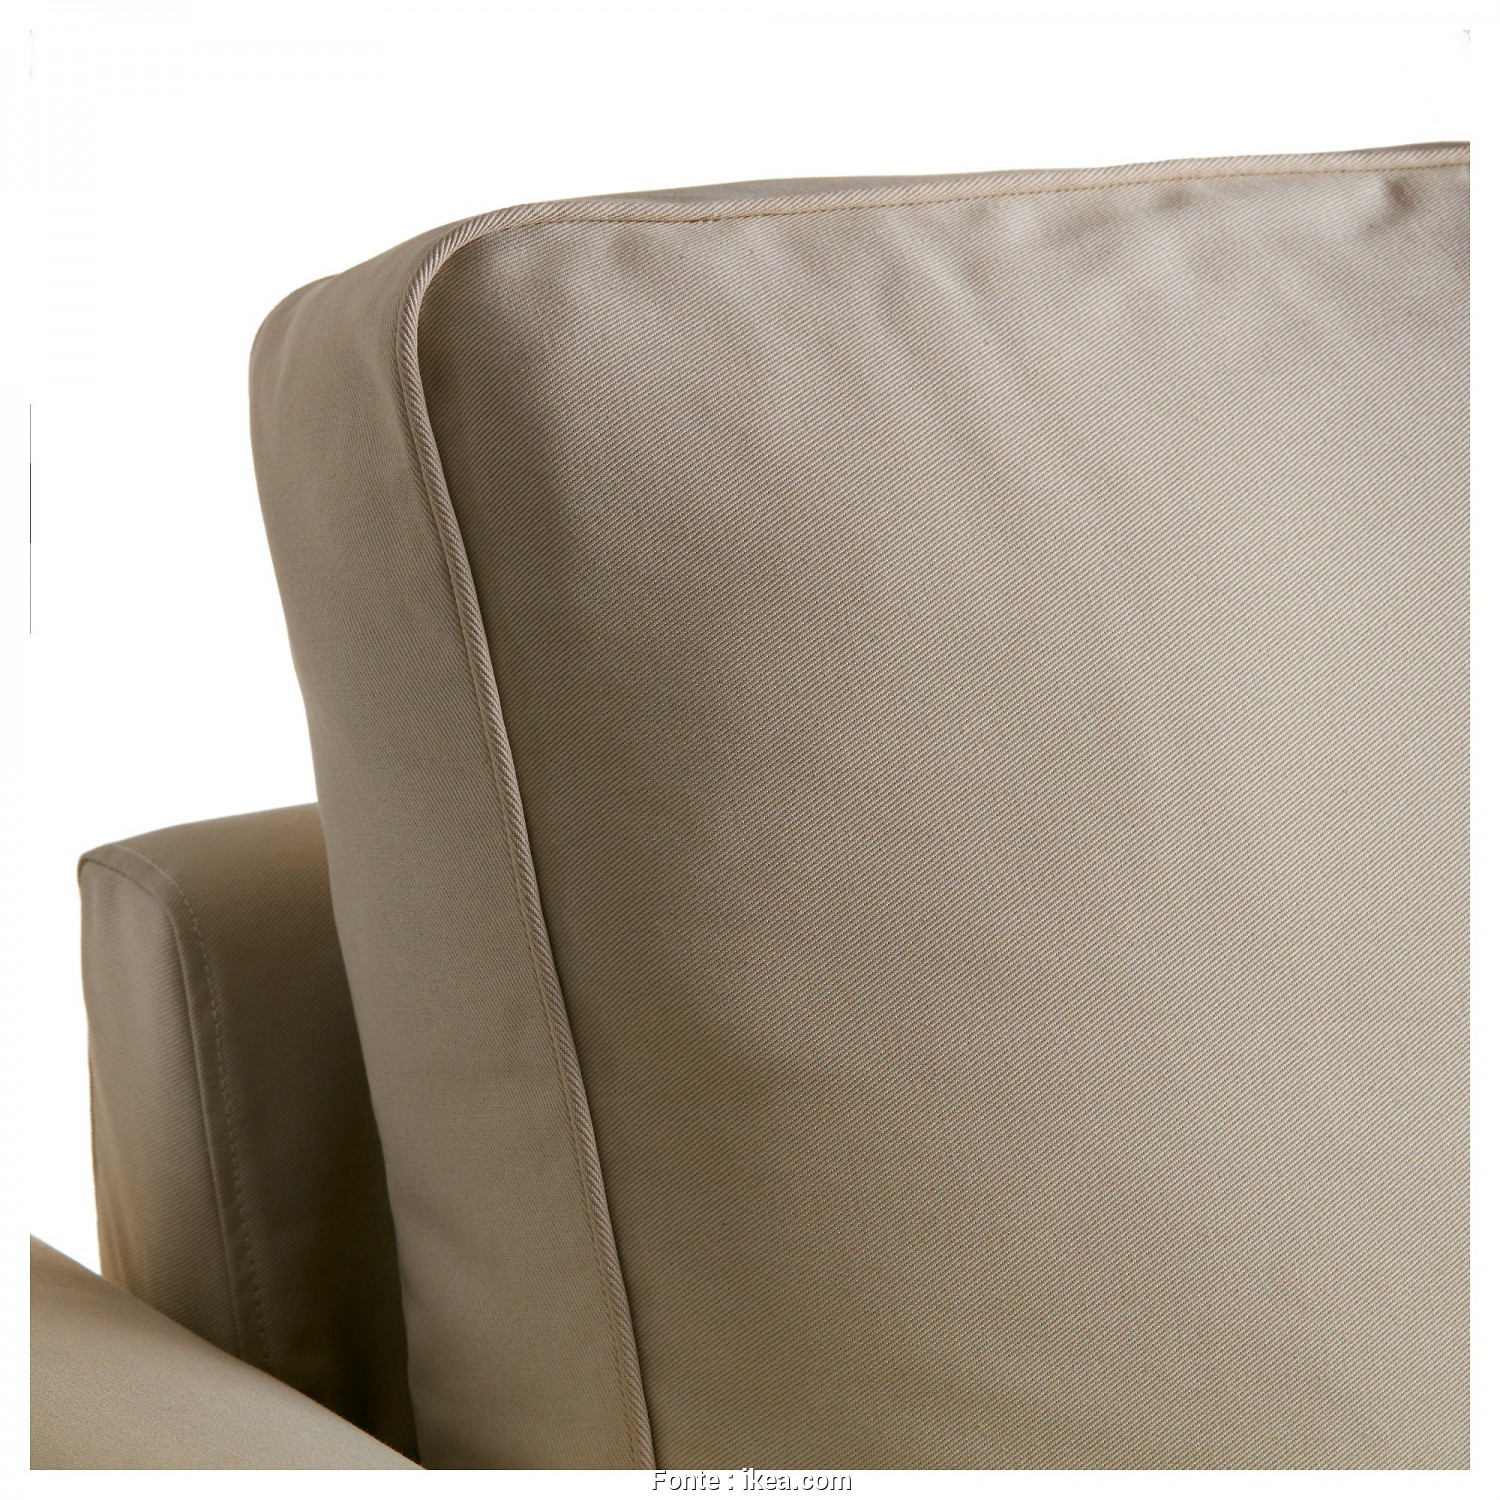 Ikea Backabro Kılıf, Superiore BACKABRO Two-Seat Sofa-Bed Cover Ramna Beige, IKEA